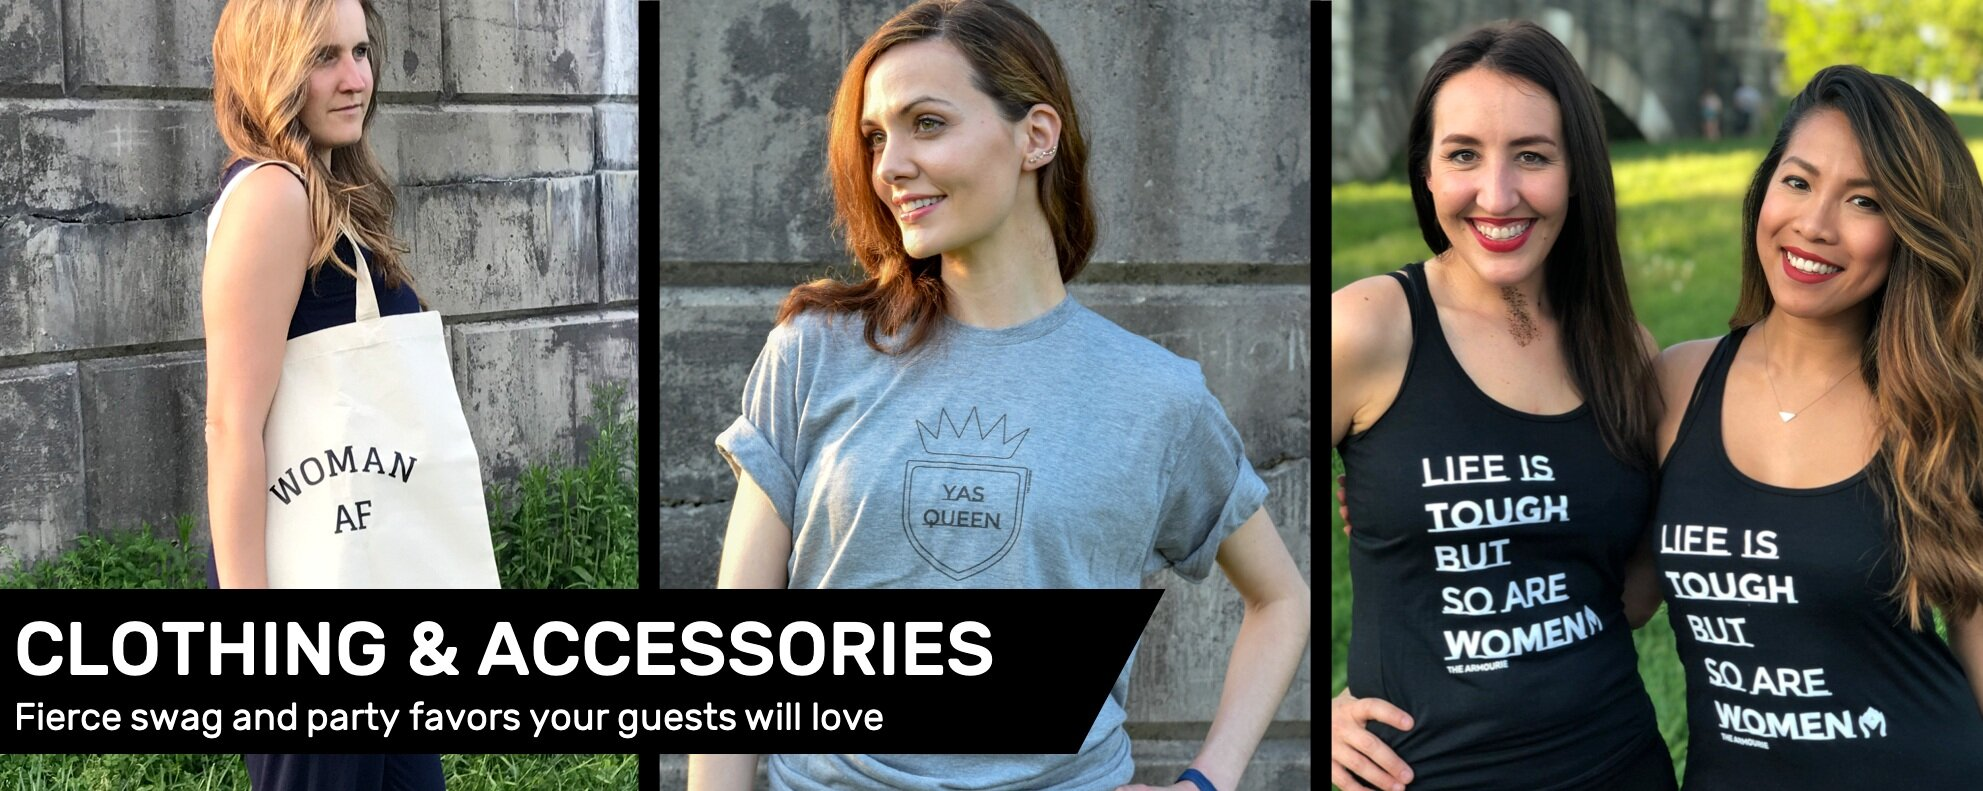 Clothing+%26+Accessories+Page+Banner.jpg